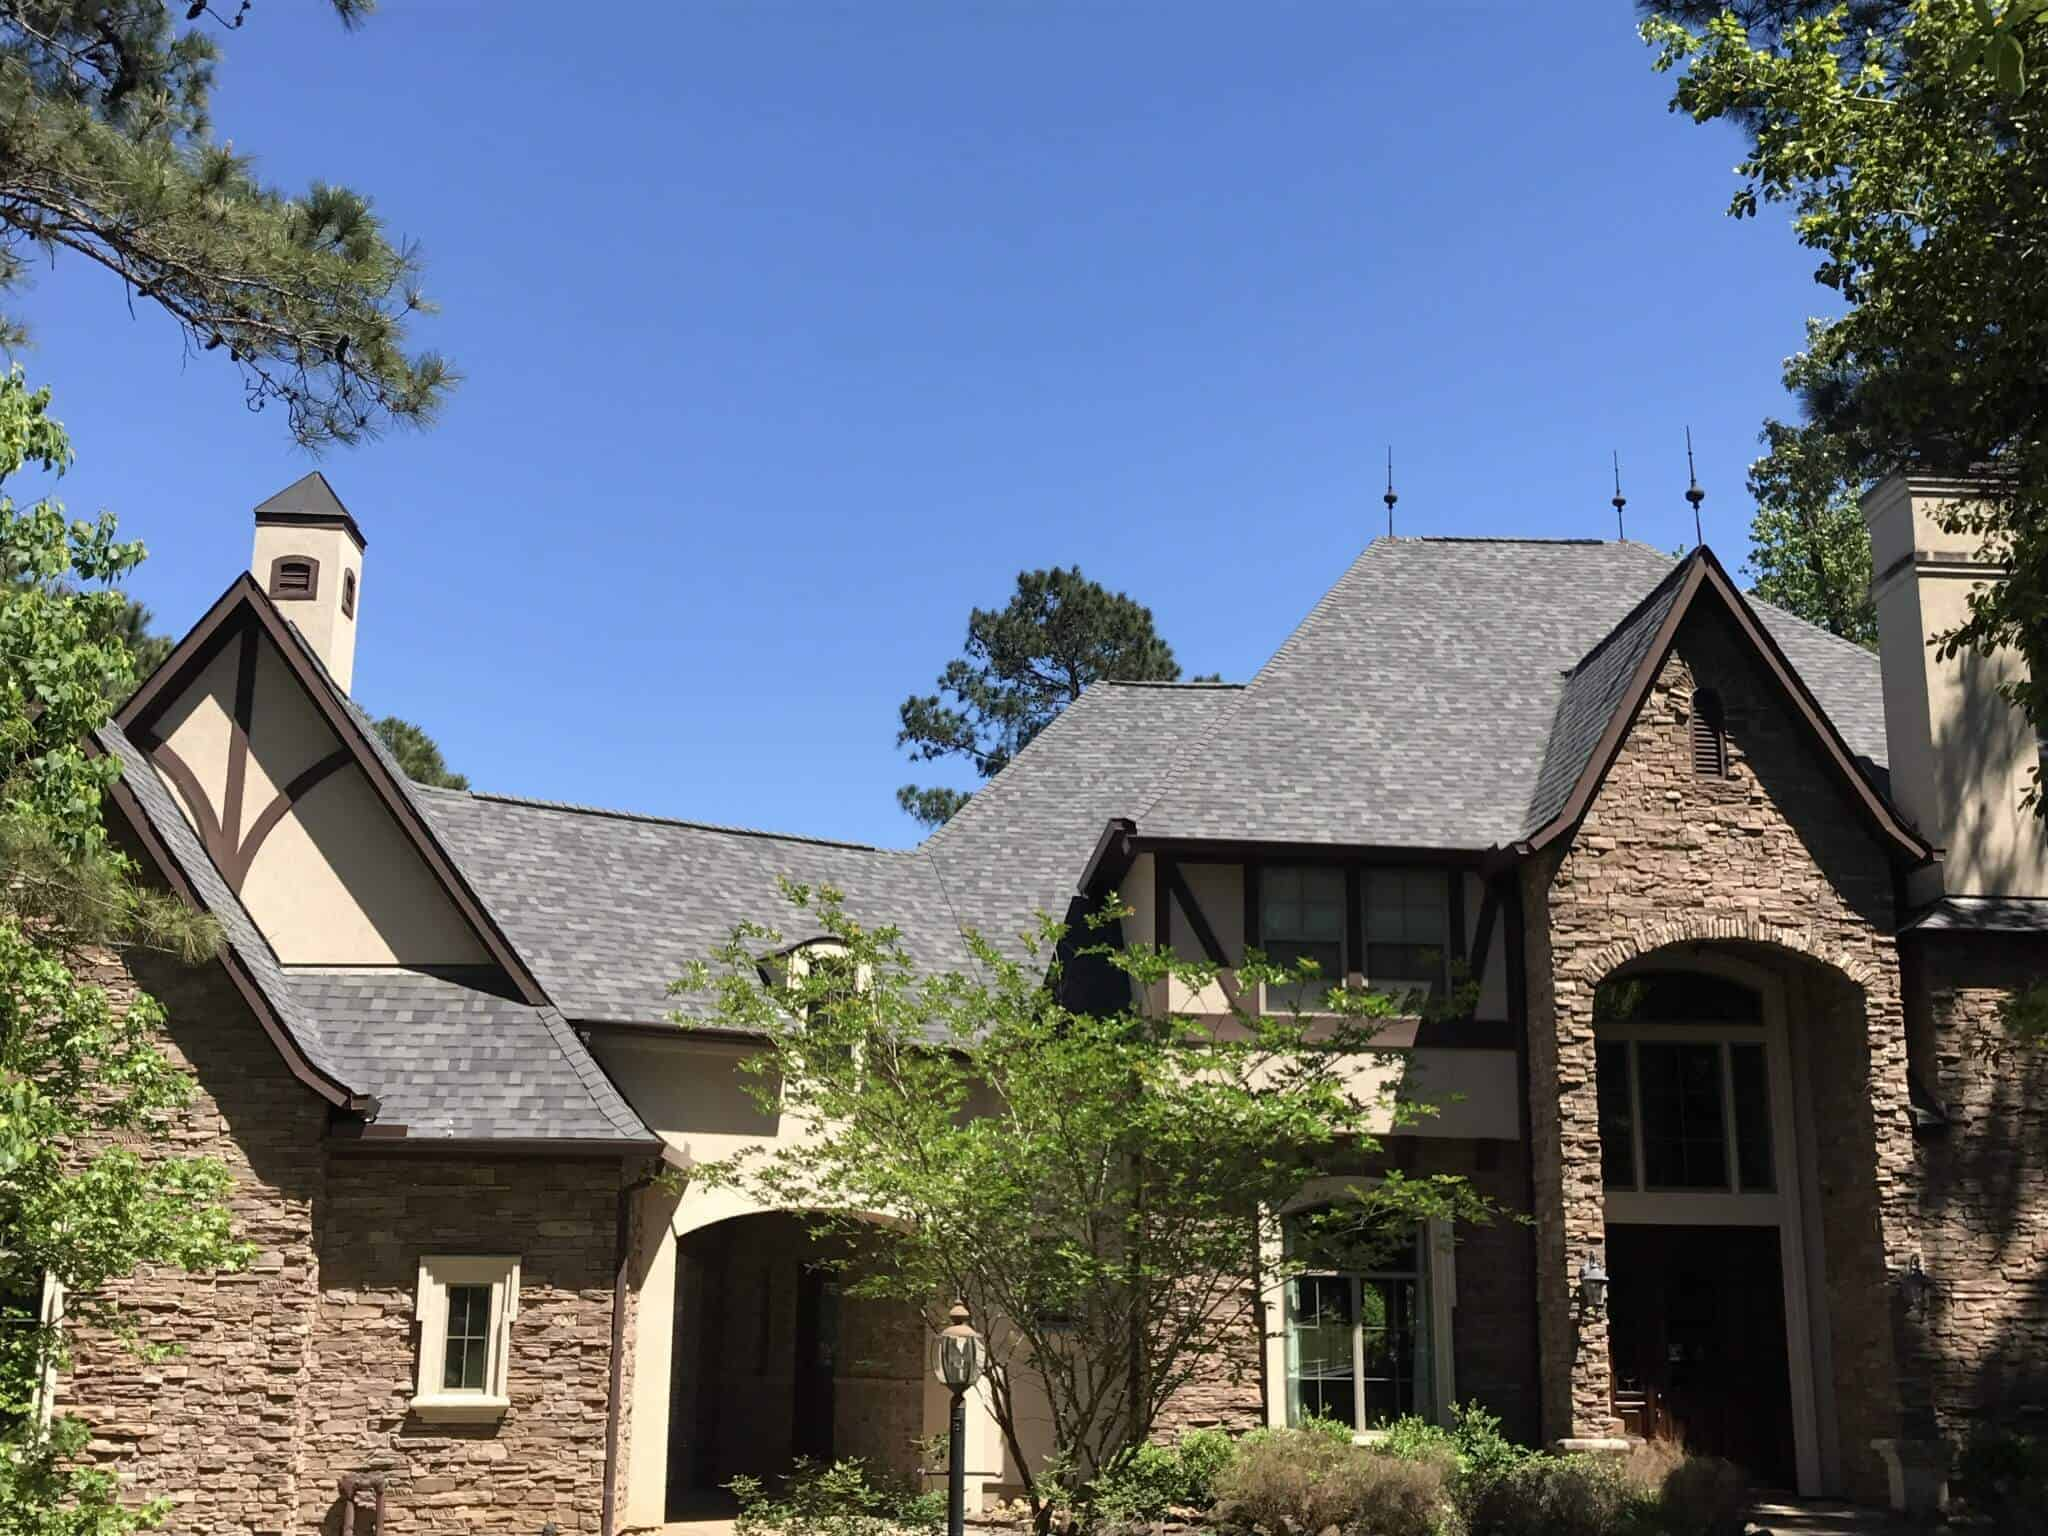 Composite Roof - GAF Roofing, CertainTeed Roofing and ...